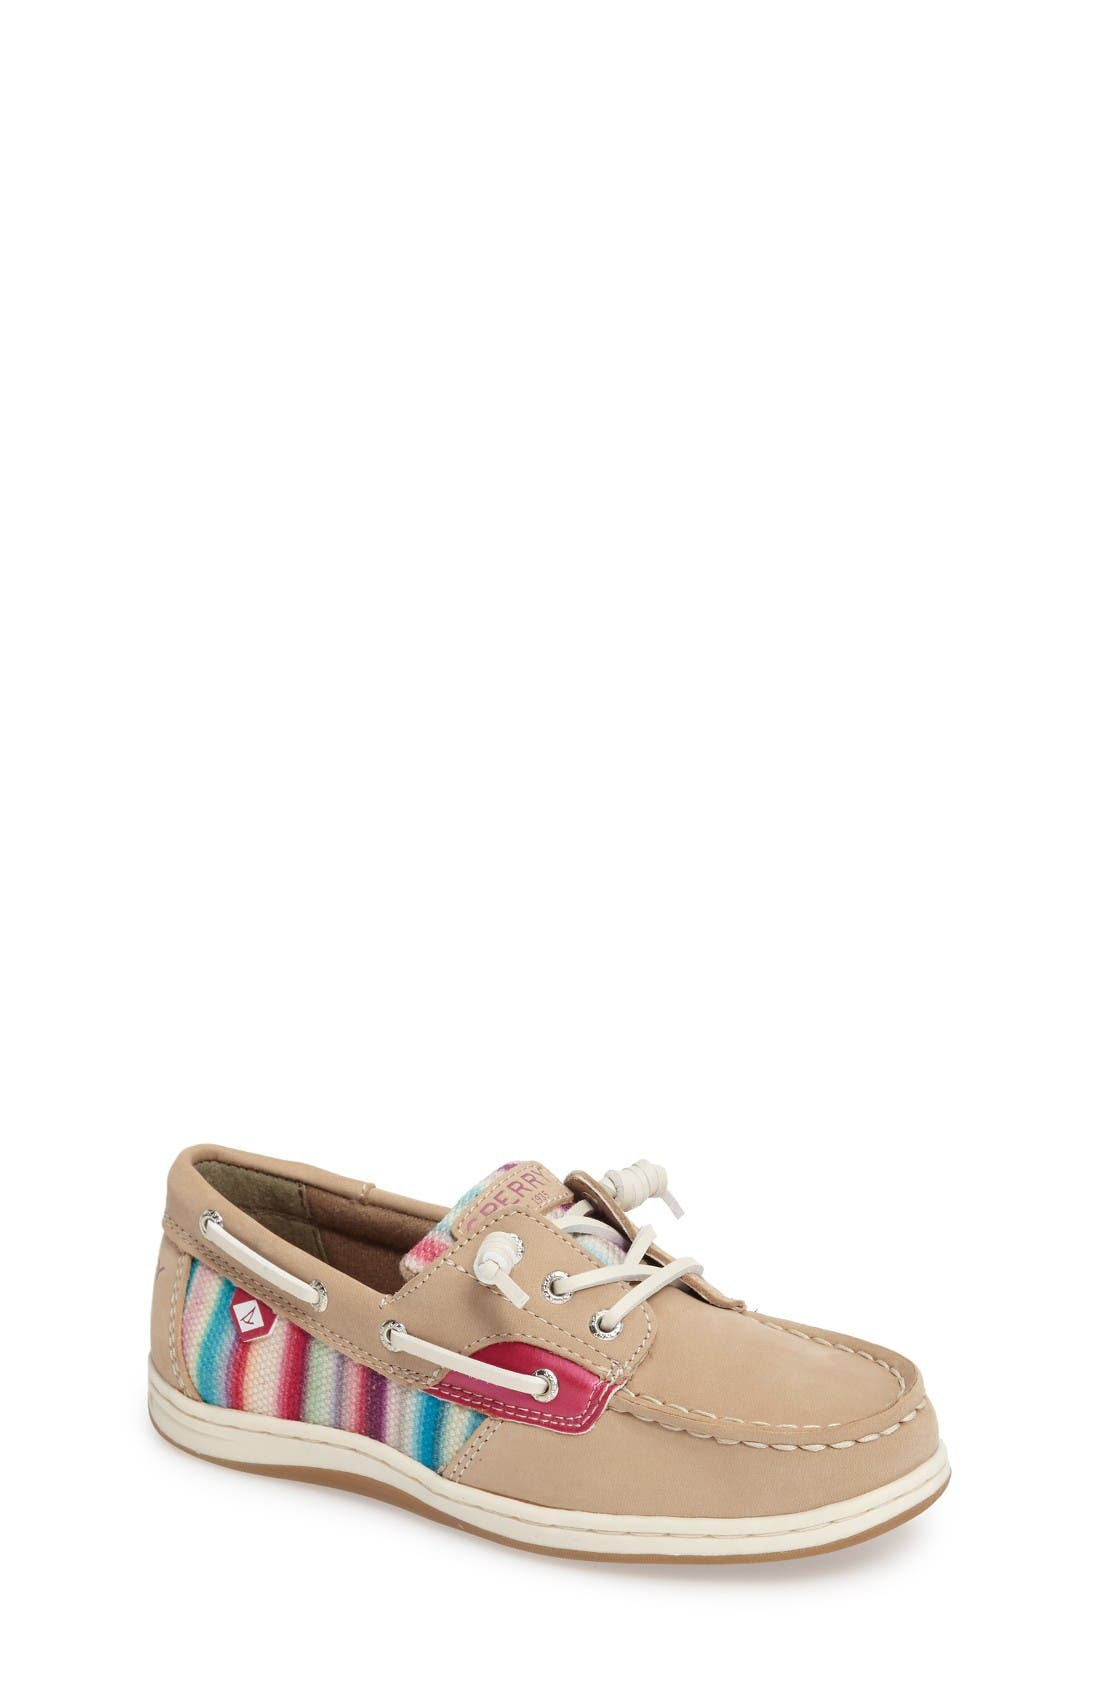 SPERRY KIDS Songfish Boat Shoe